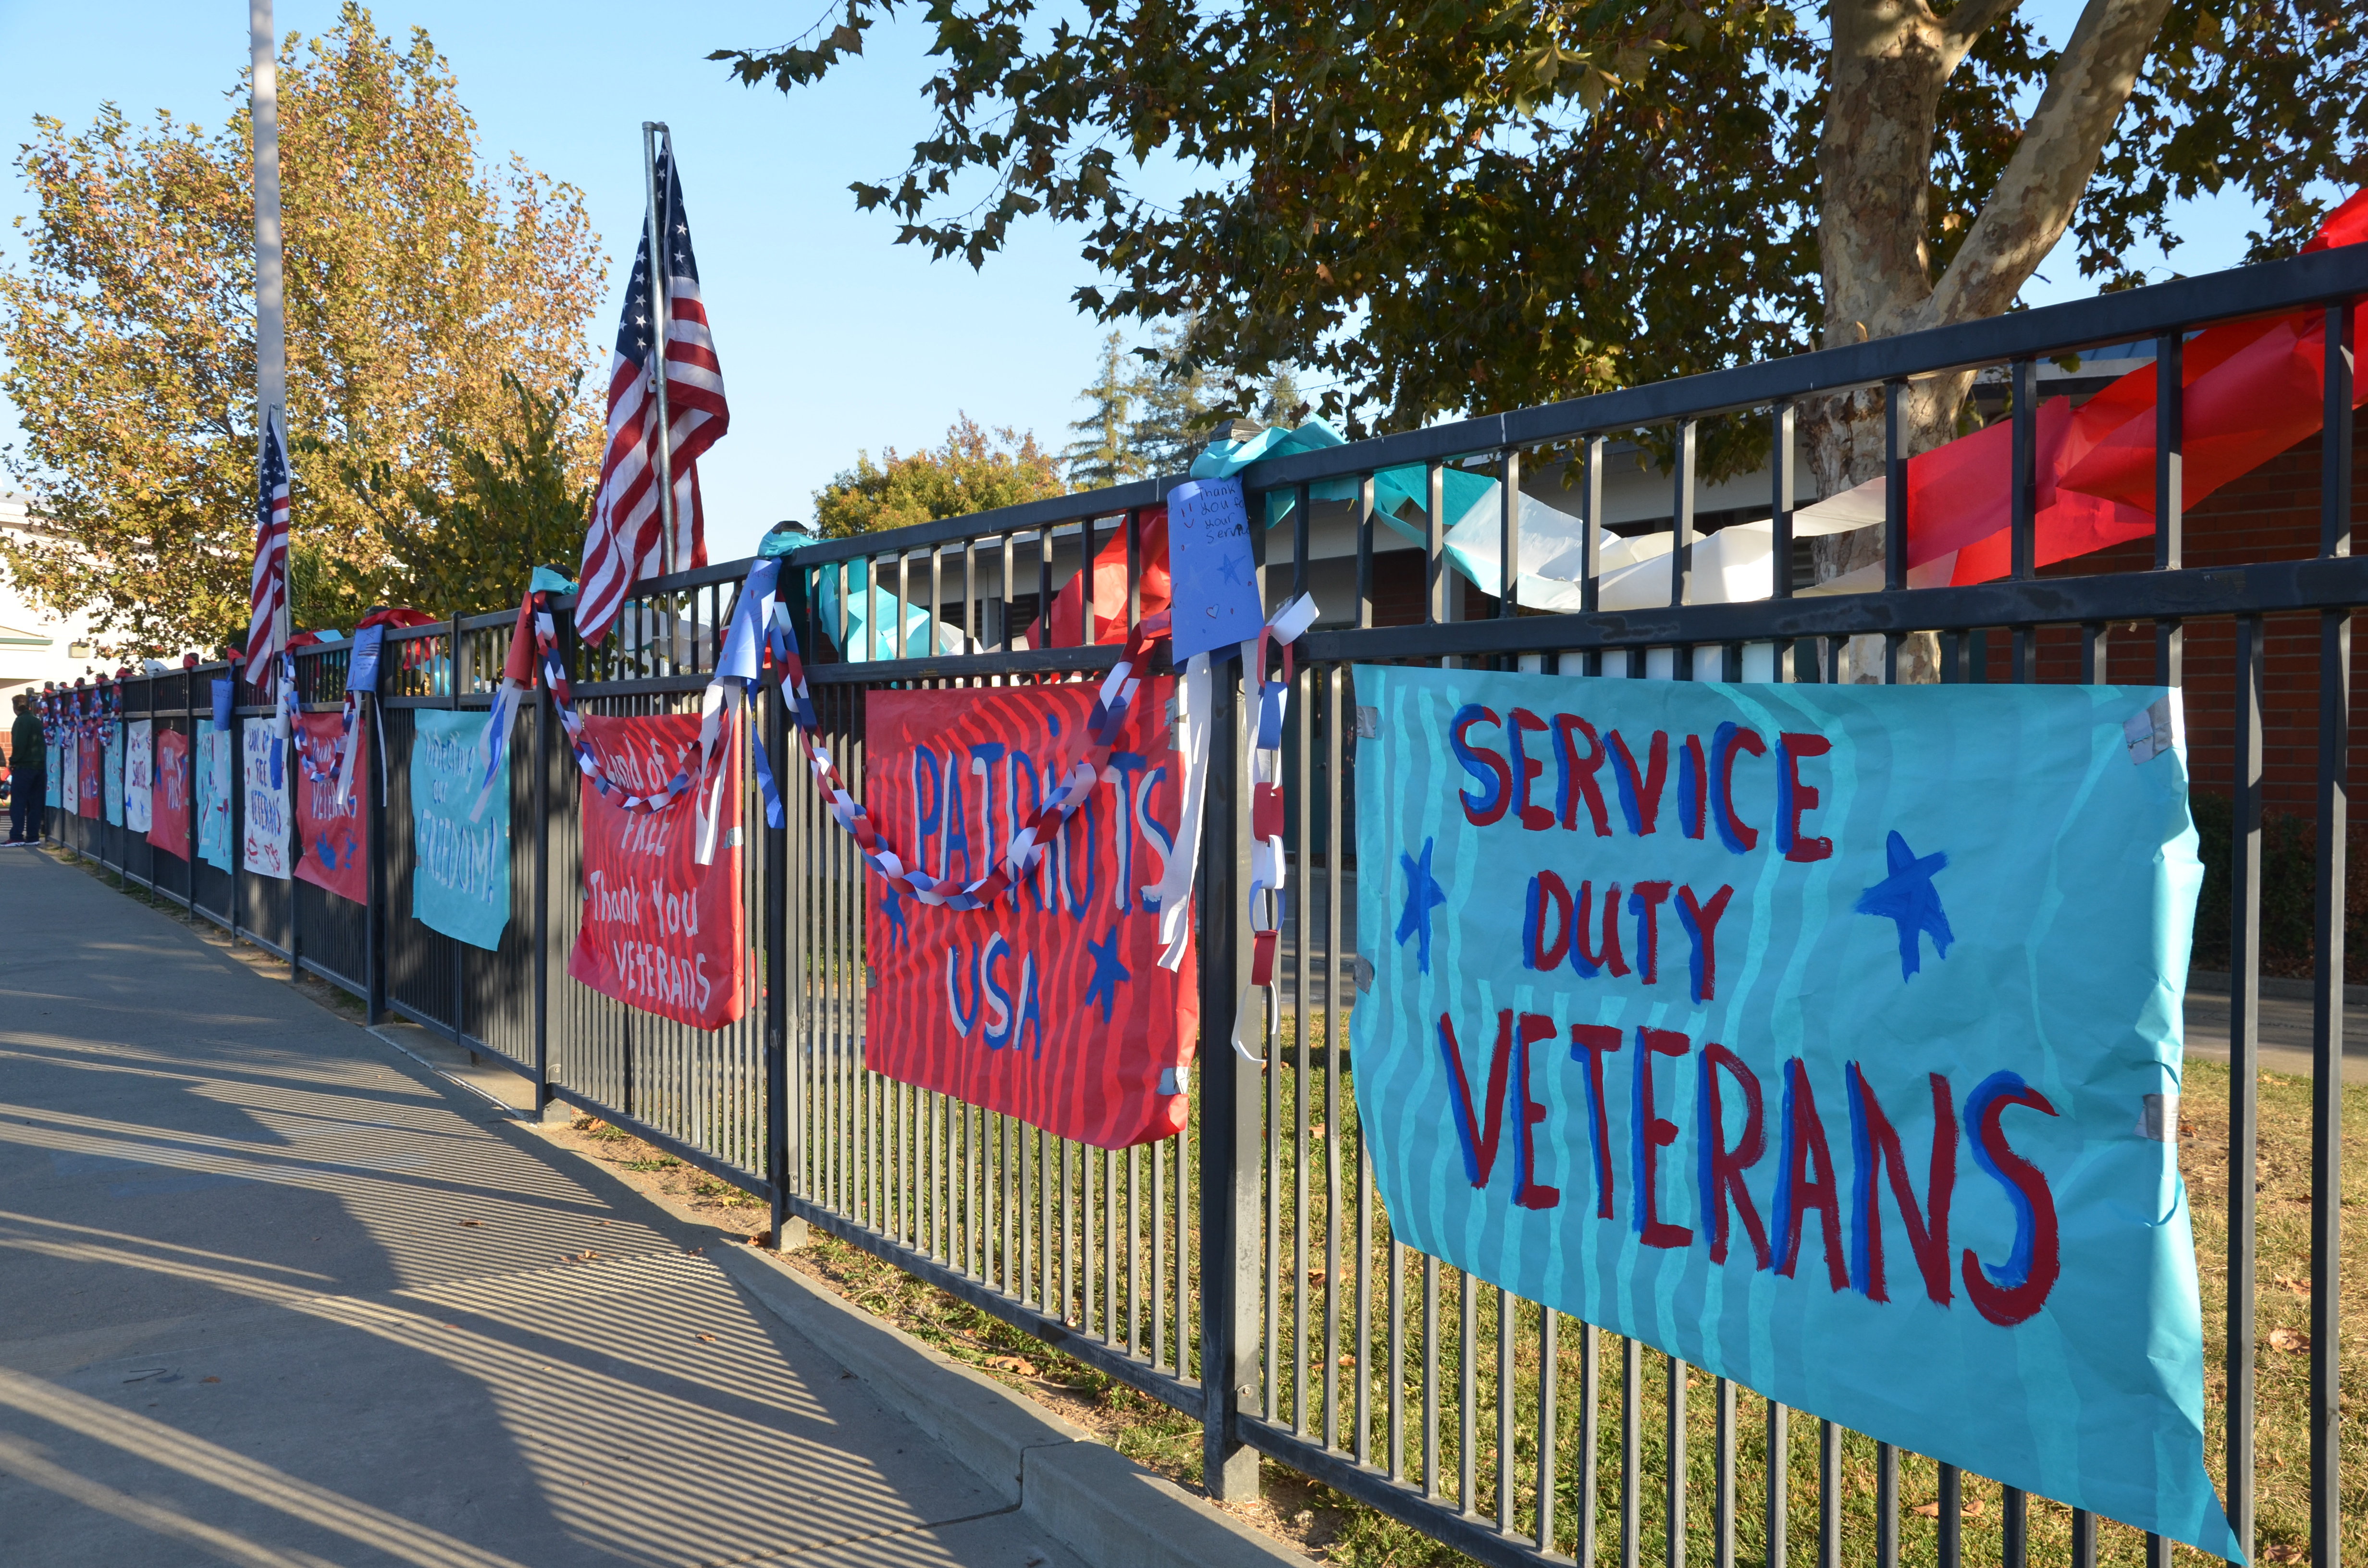 Samuel Kennedy Elementary School Celebrates Local Veterans